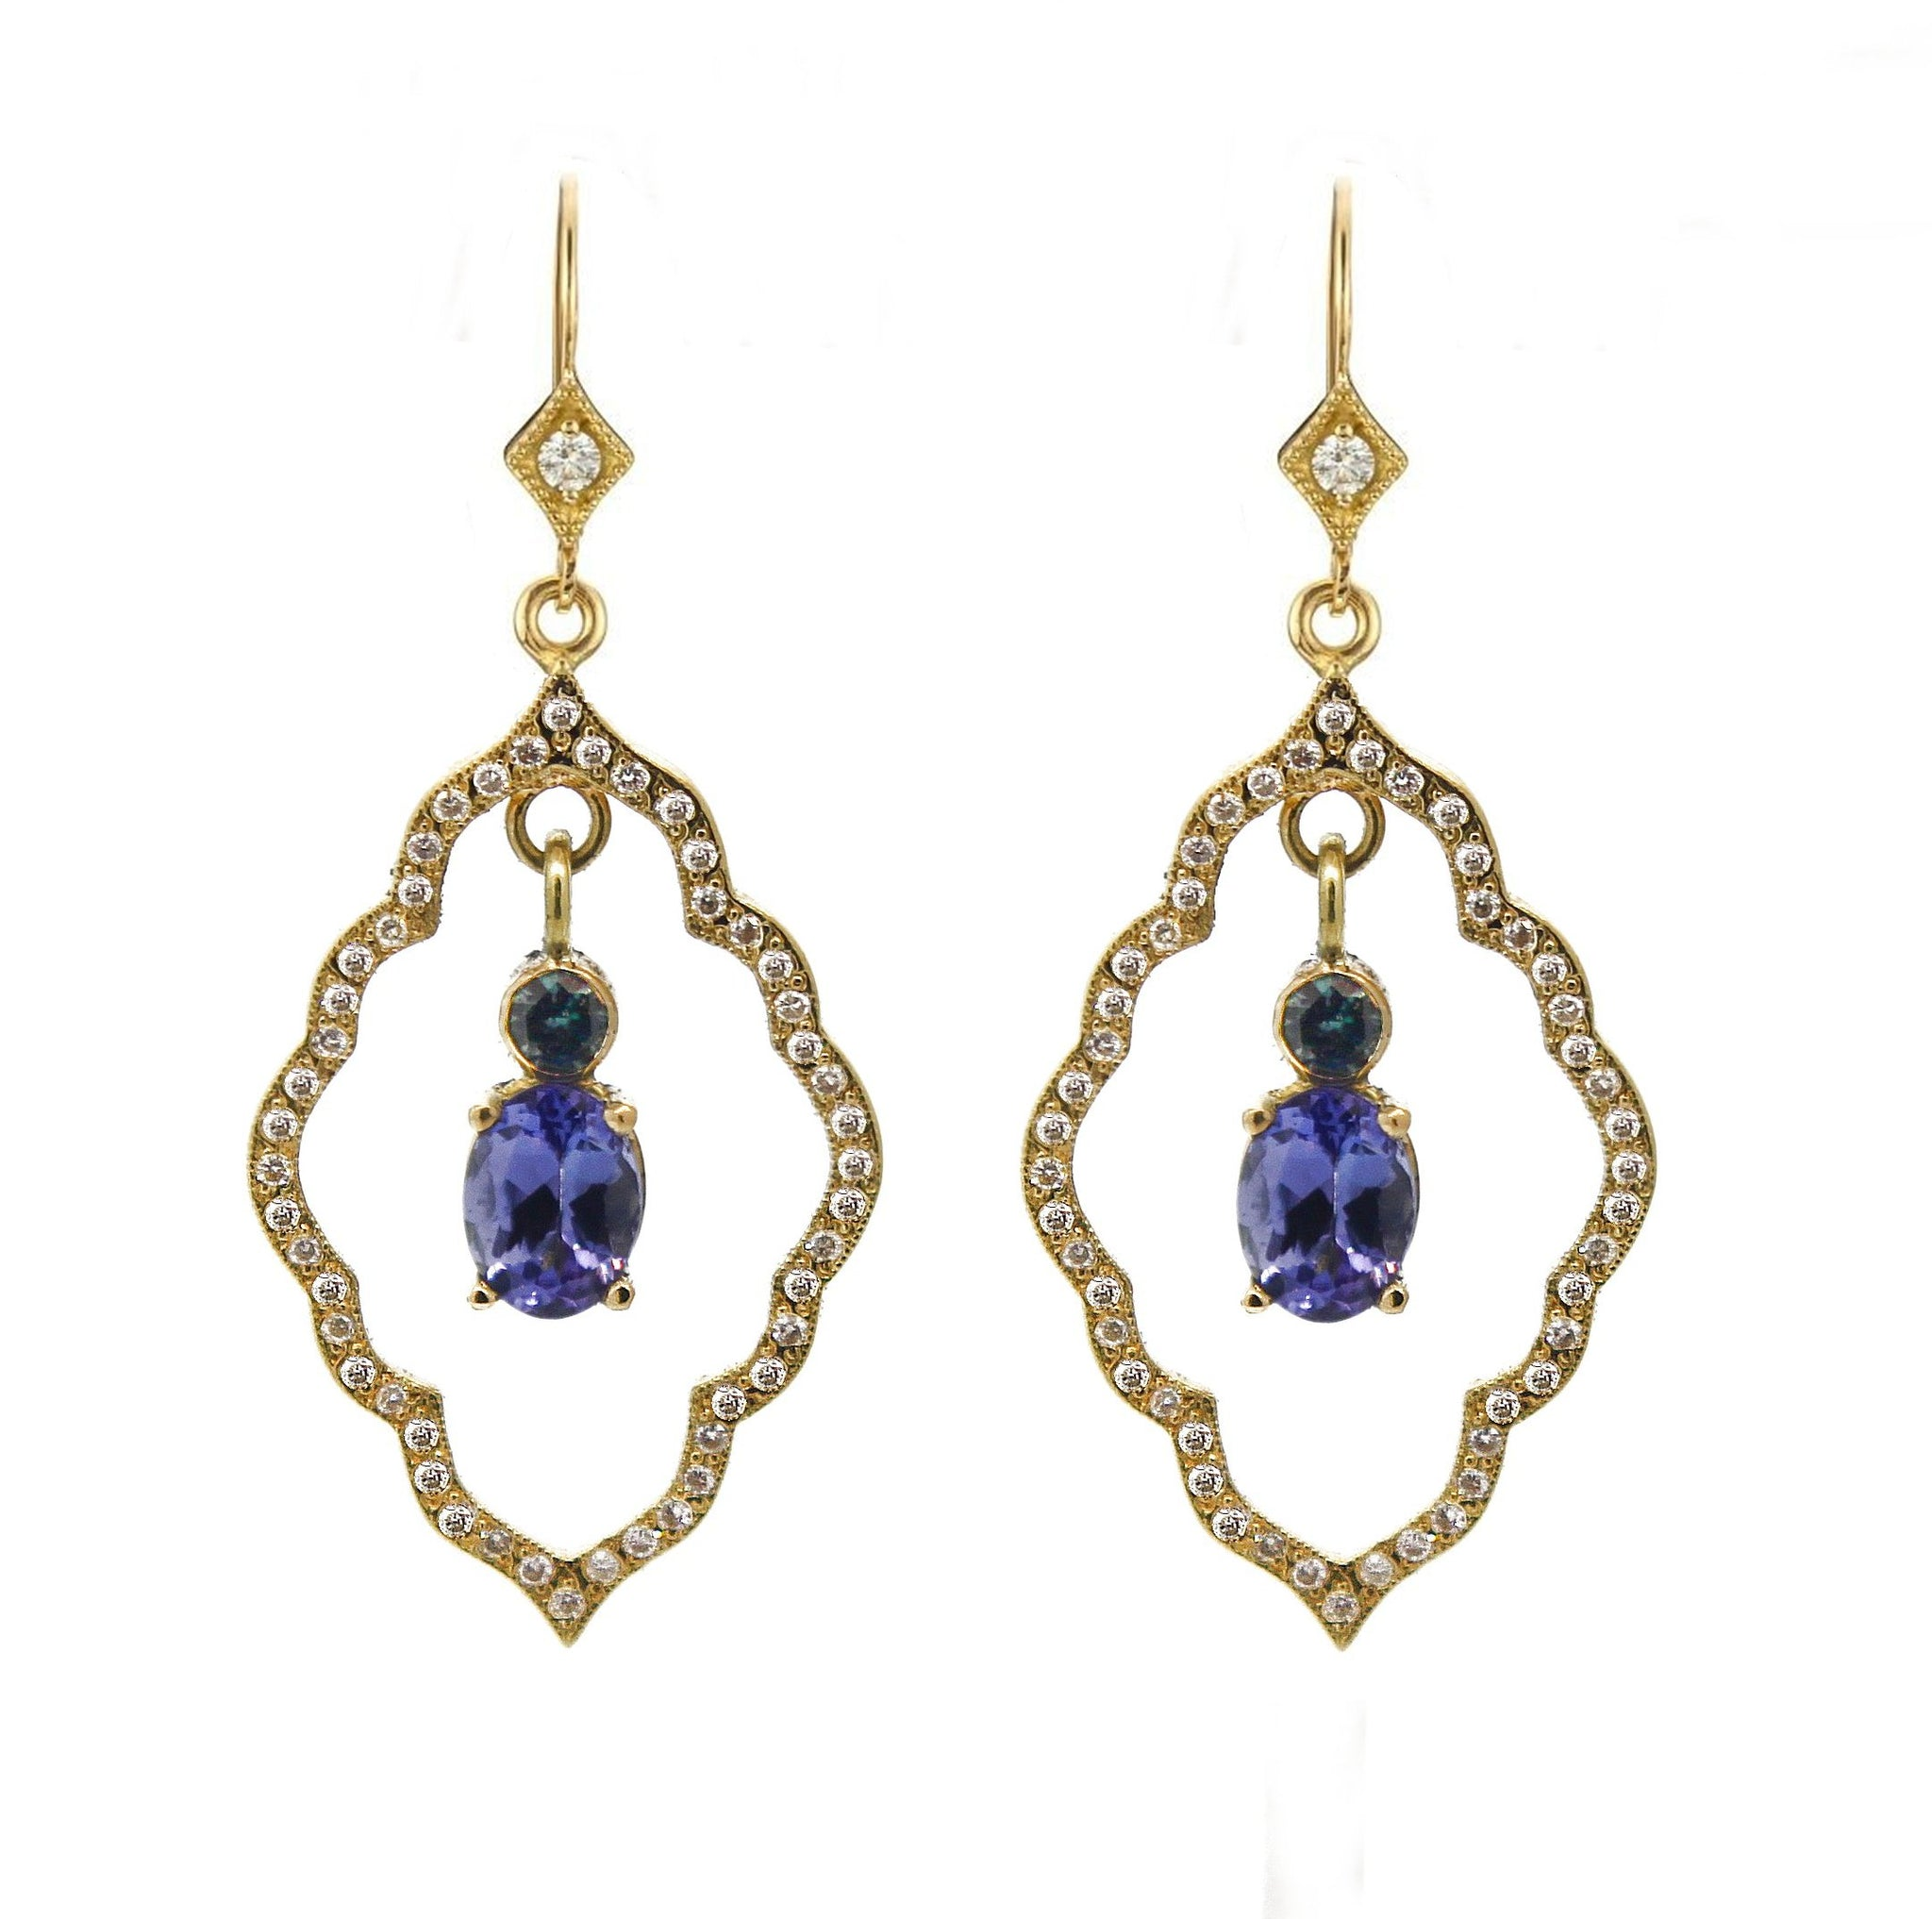 gold earrings with tanzanite in white tw diamond halo